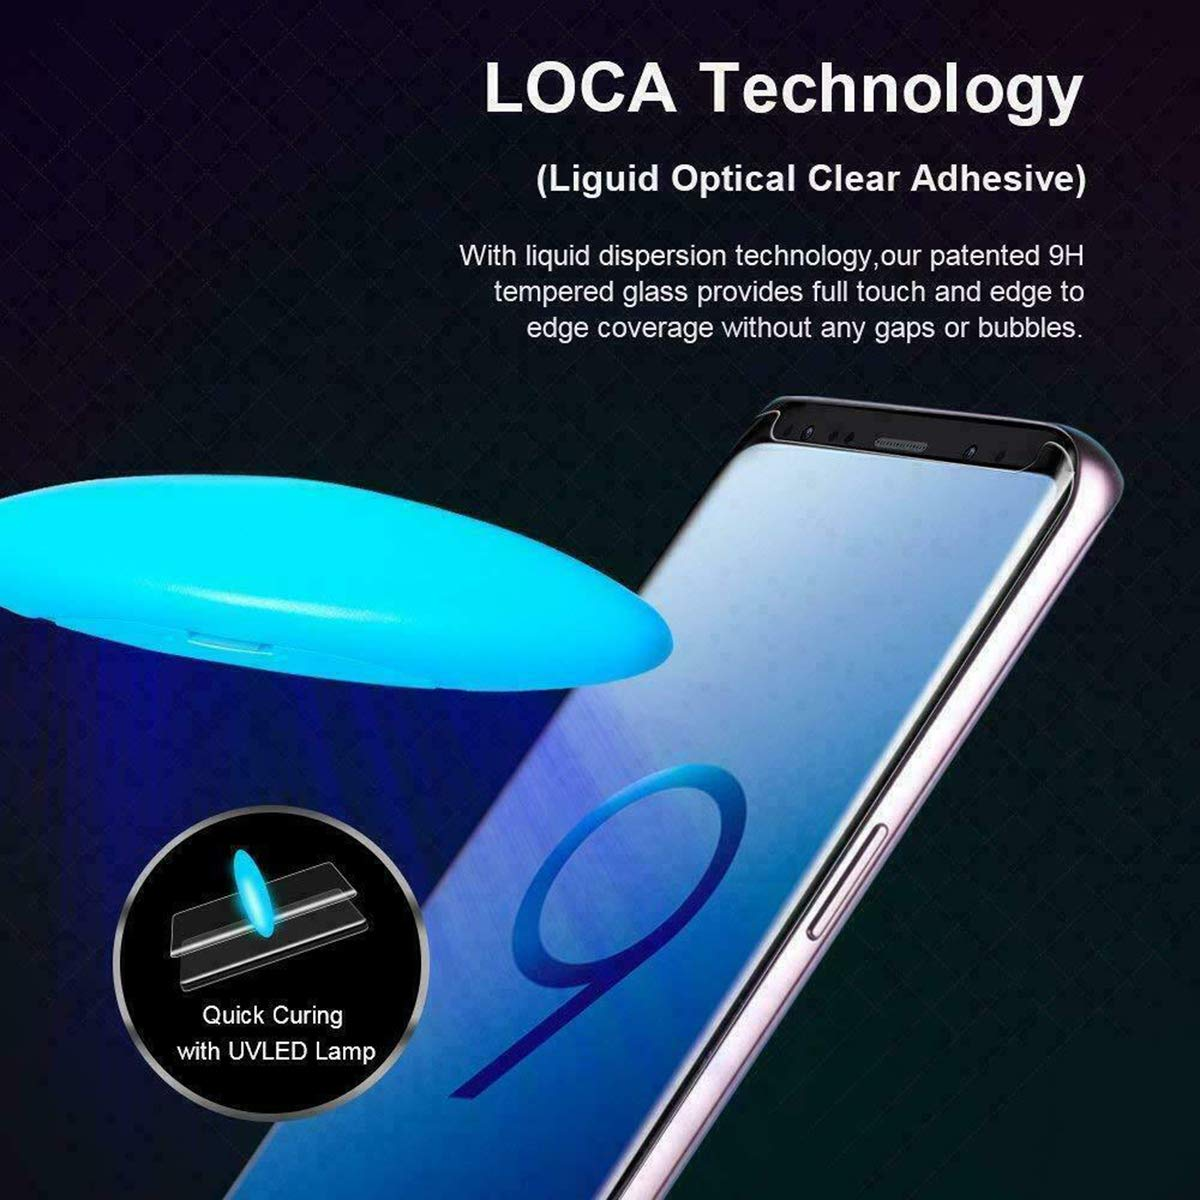 Galaxy S10 Plus, Screen Protector, Tempered Glass with UV Light for Samsung Galaxy S10 Plus - Support with ULTRASONIC Fingerprint